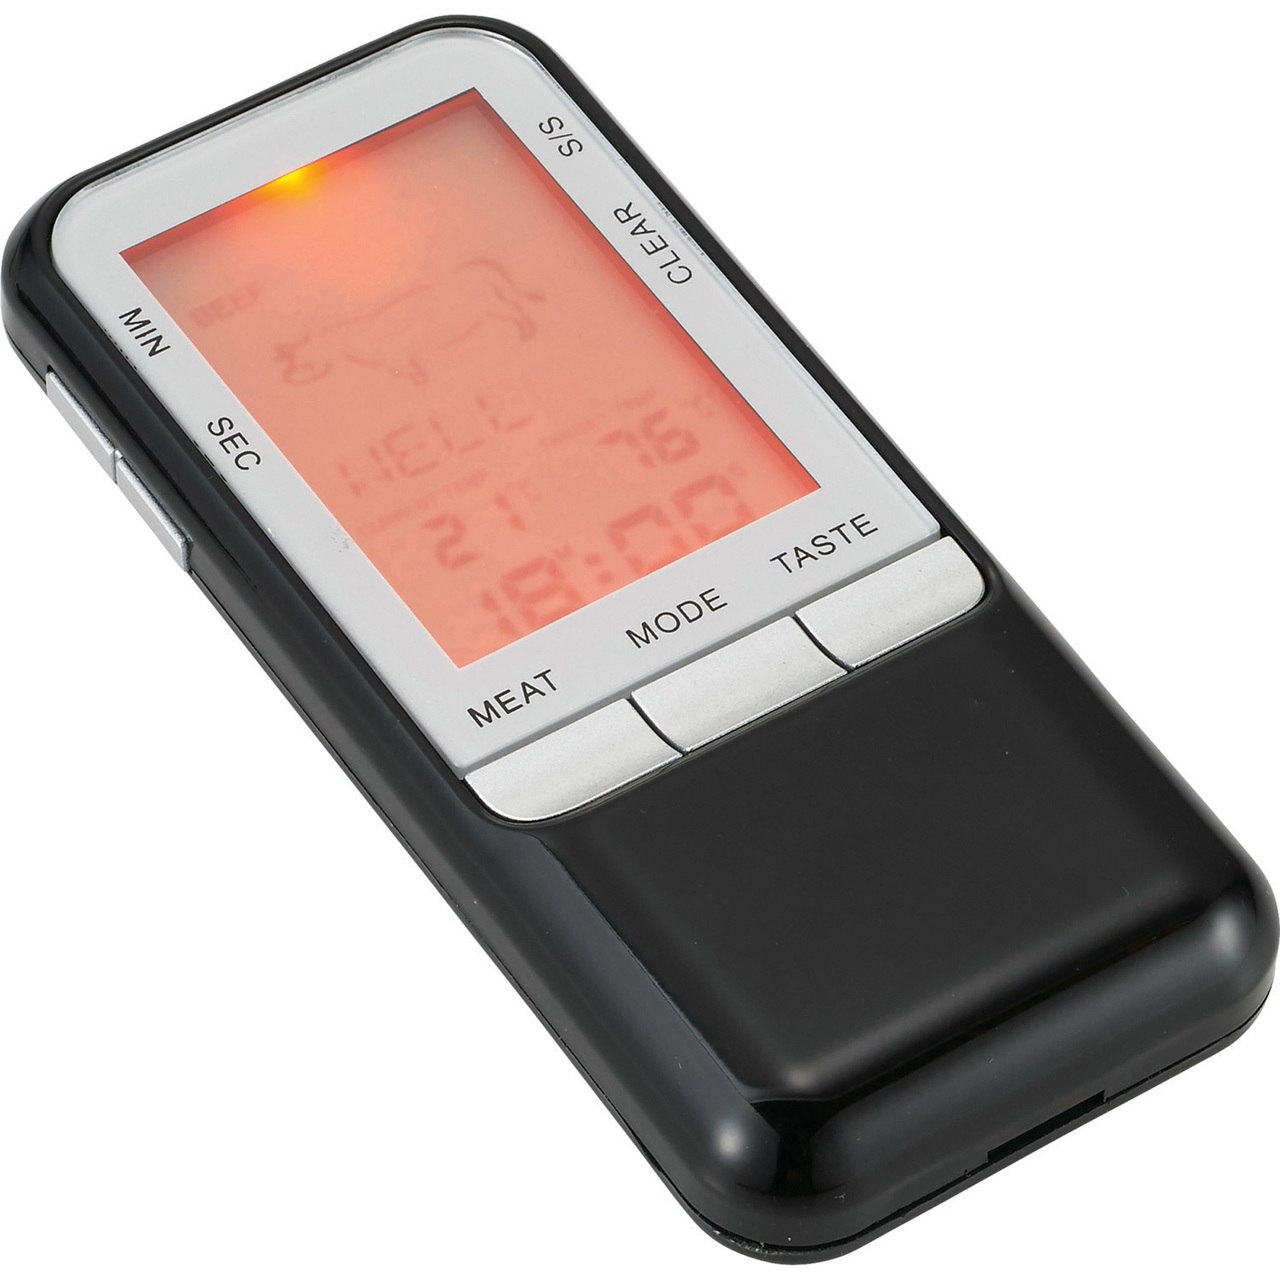 Promotional Item #3: BBQ THERMOMETER WITH WIRELESS REMOTE